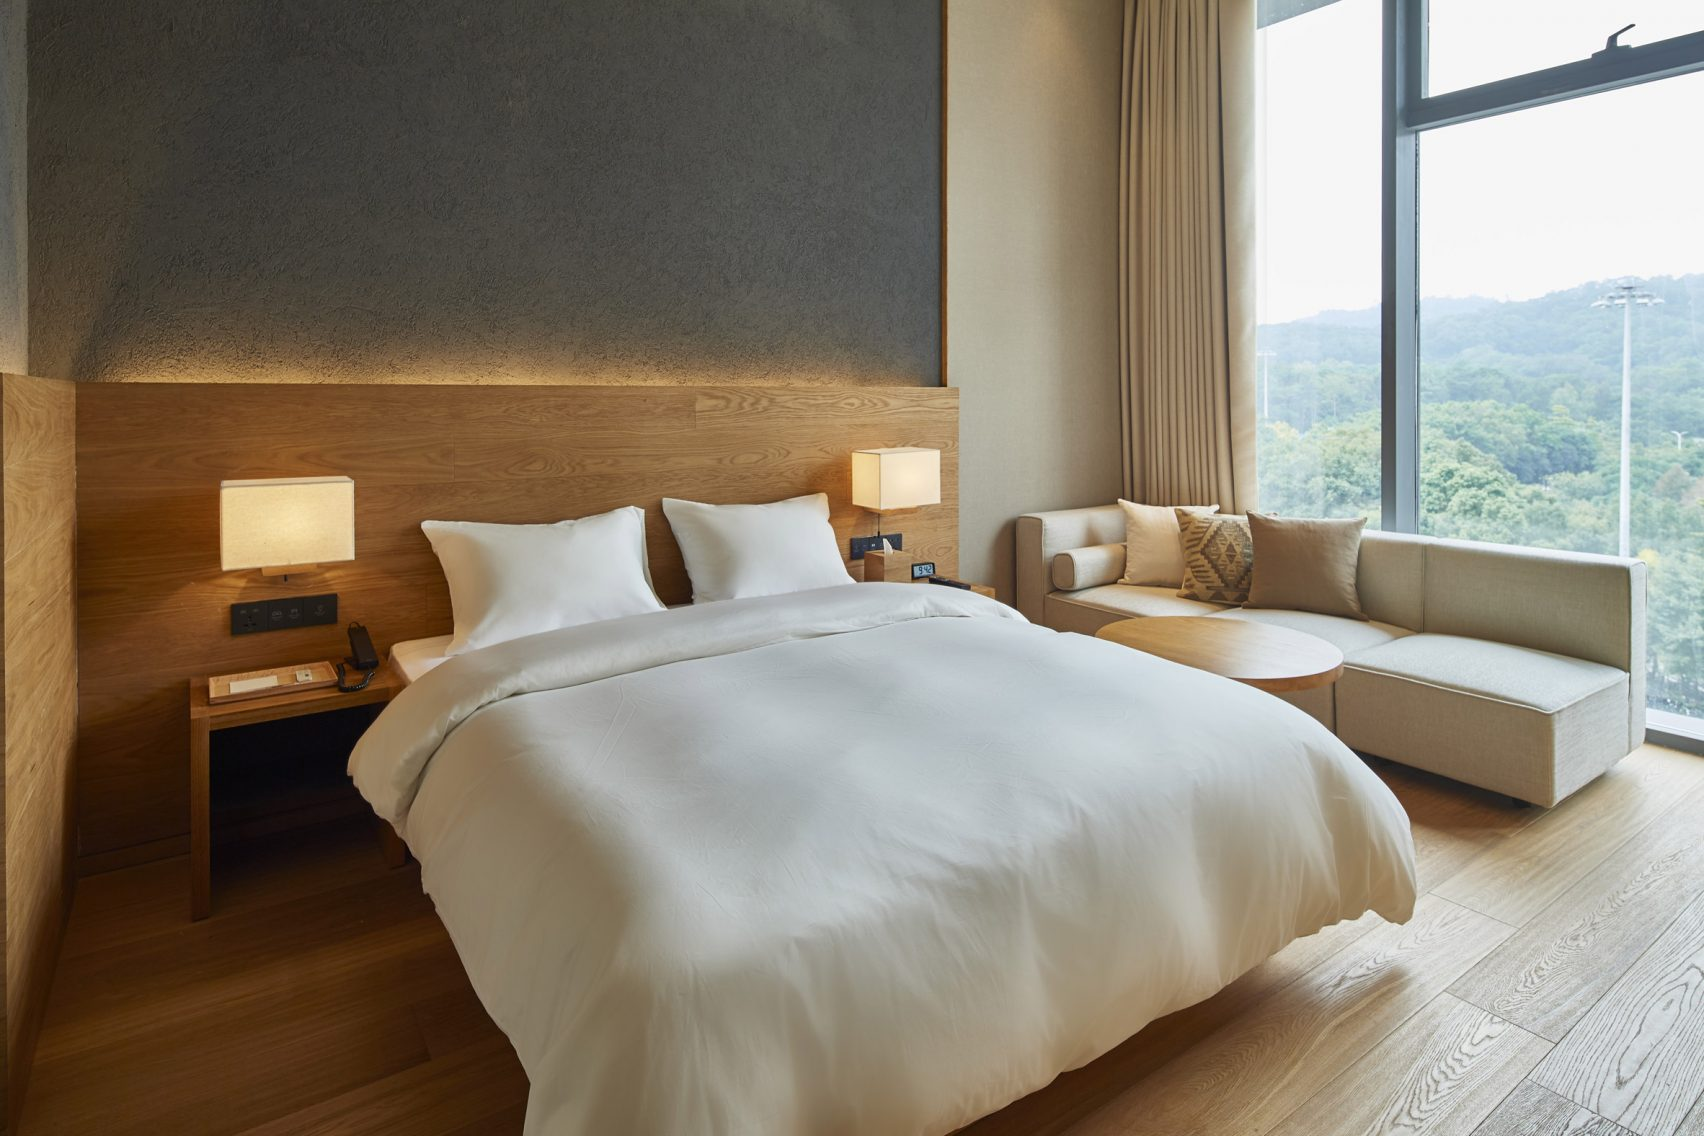 Hotel room design trends what travellers want in their for Design hotel rom